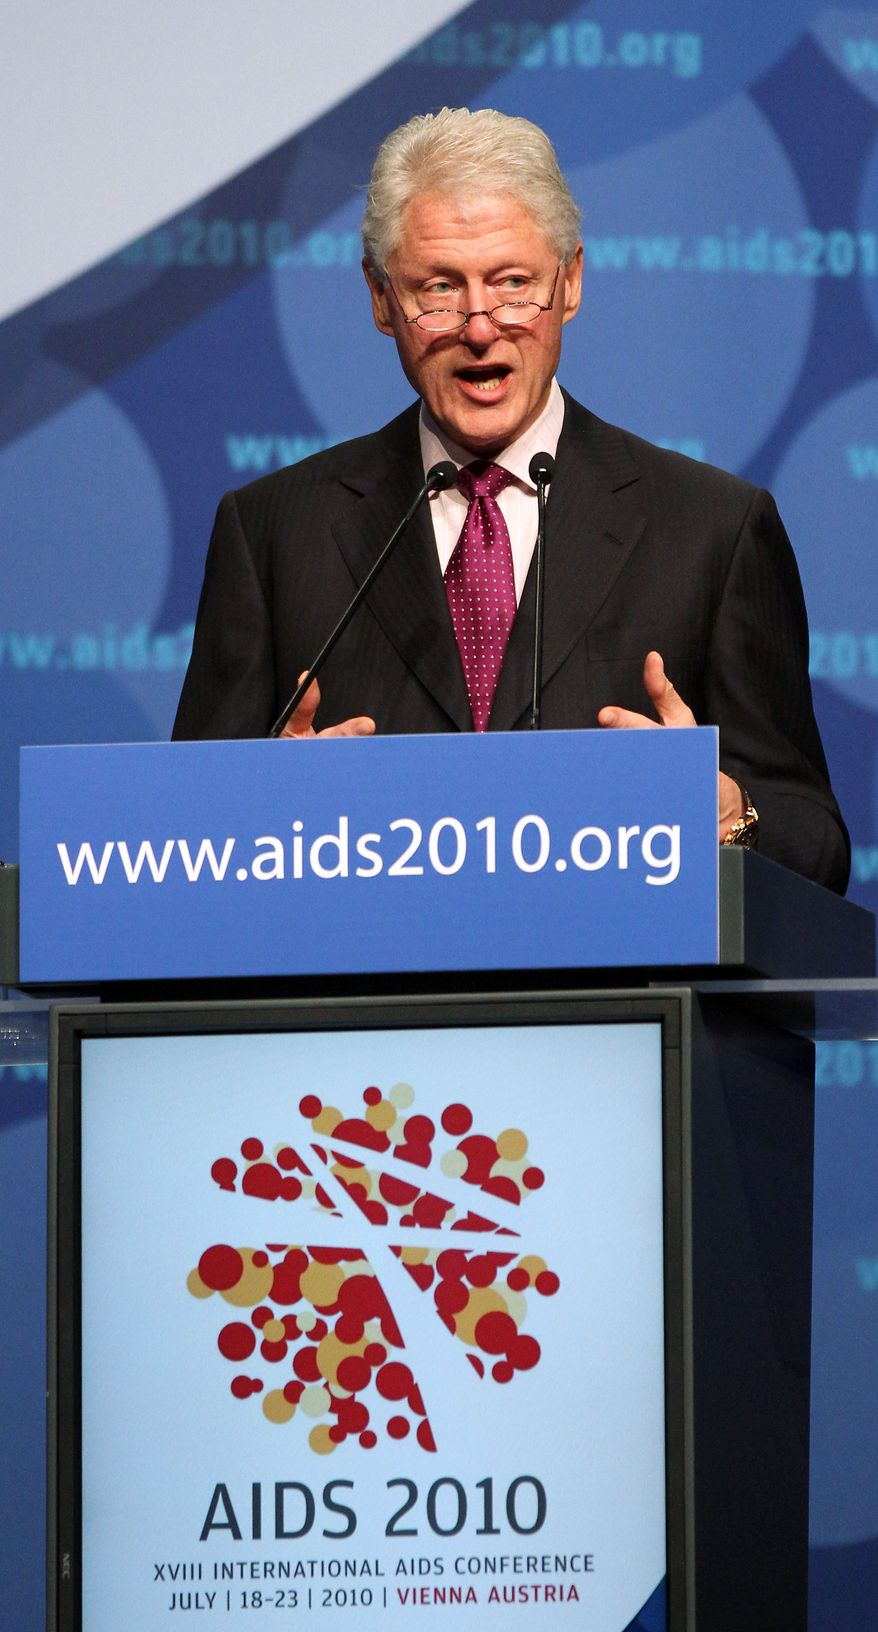 Former President Bill Clinton addresses delegates at the International AIDS Conference in Vienna, Austria, on Monday, July 19, 2010. (AP Photo/Ronald Zak)